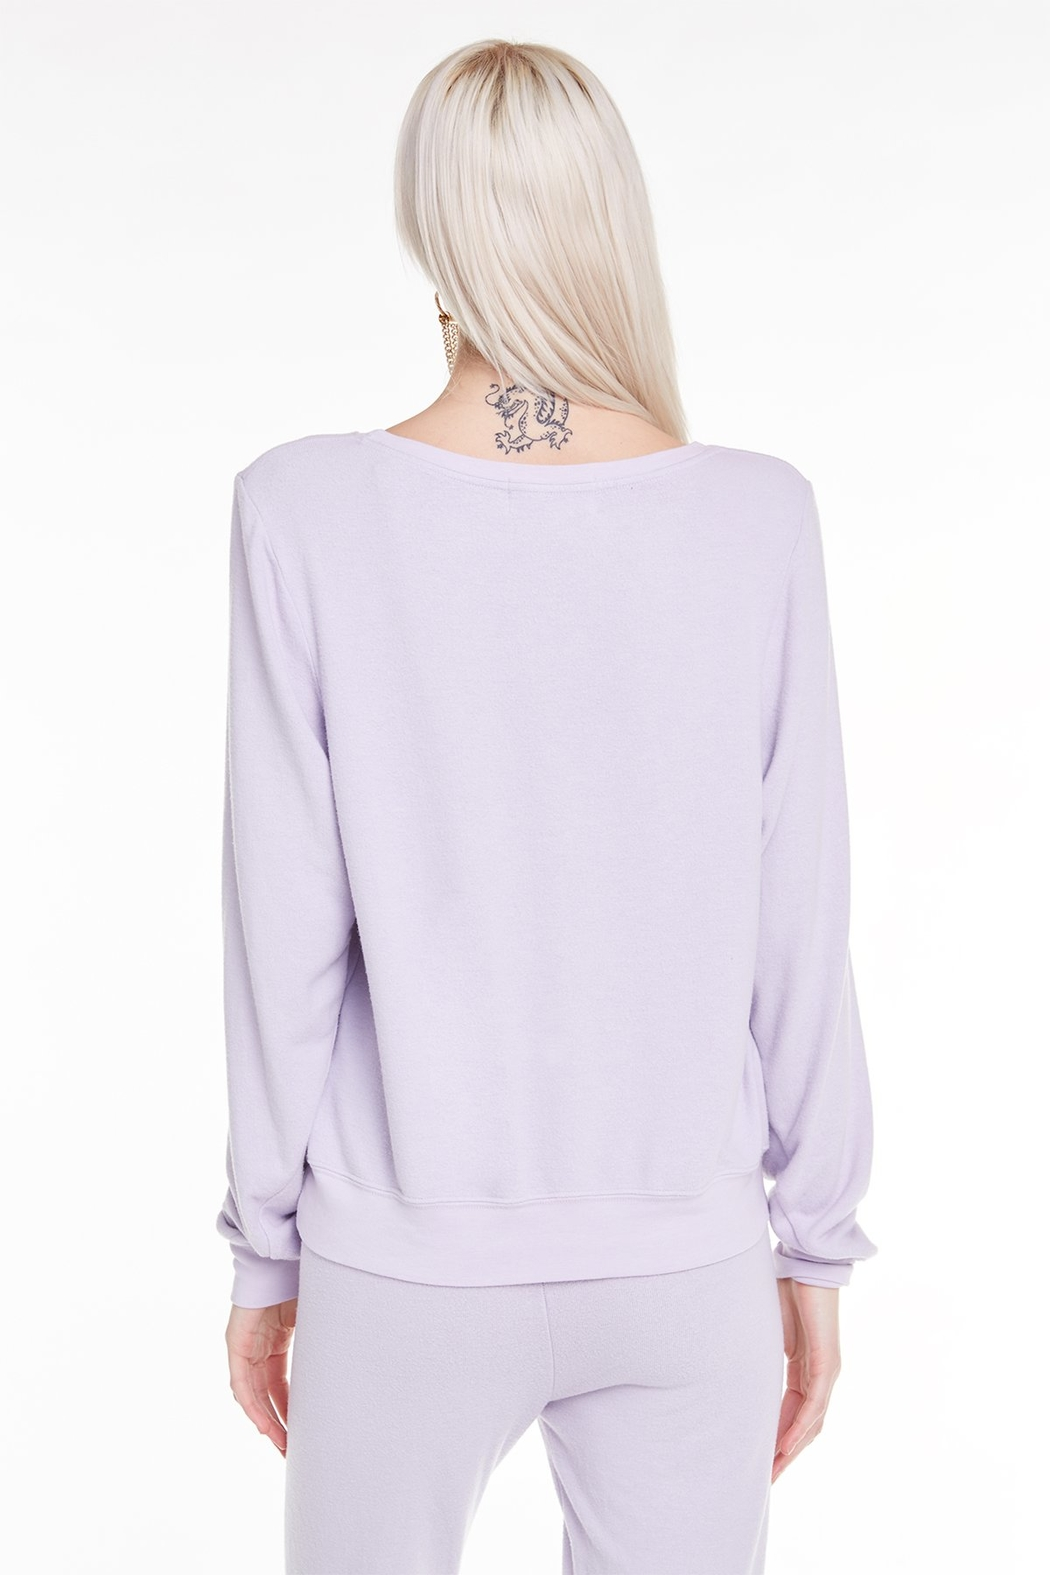 Wildfox California Baggy Beach Jumper - Side Cropped Image